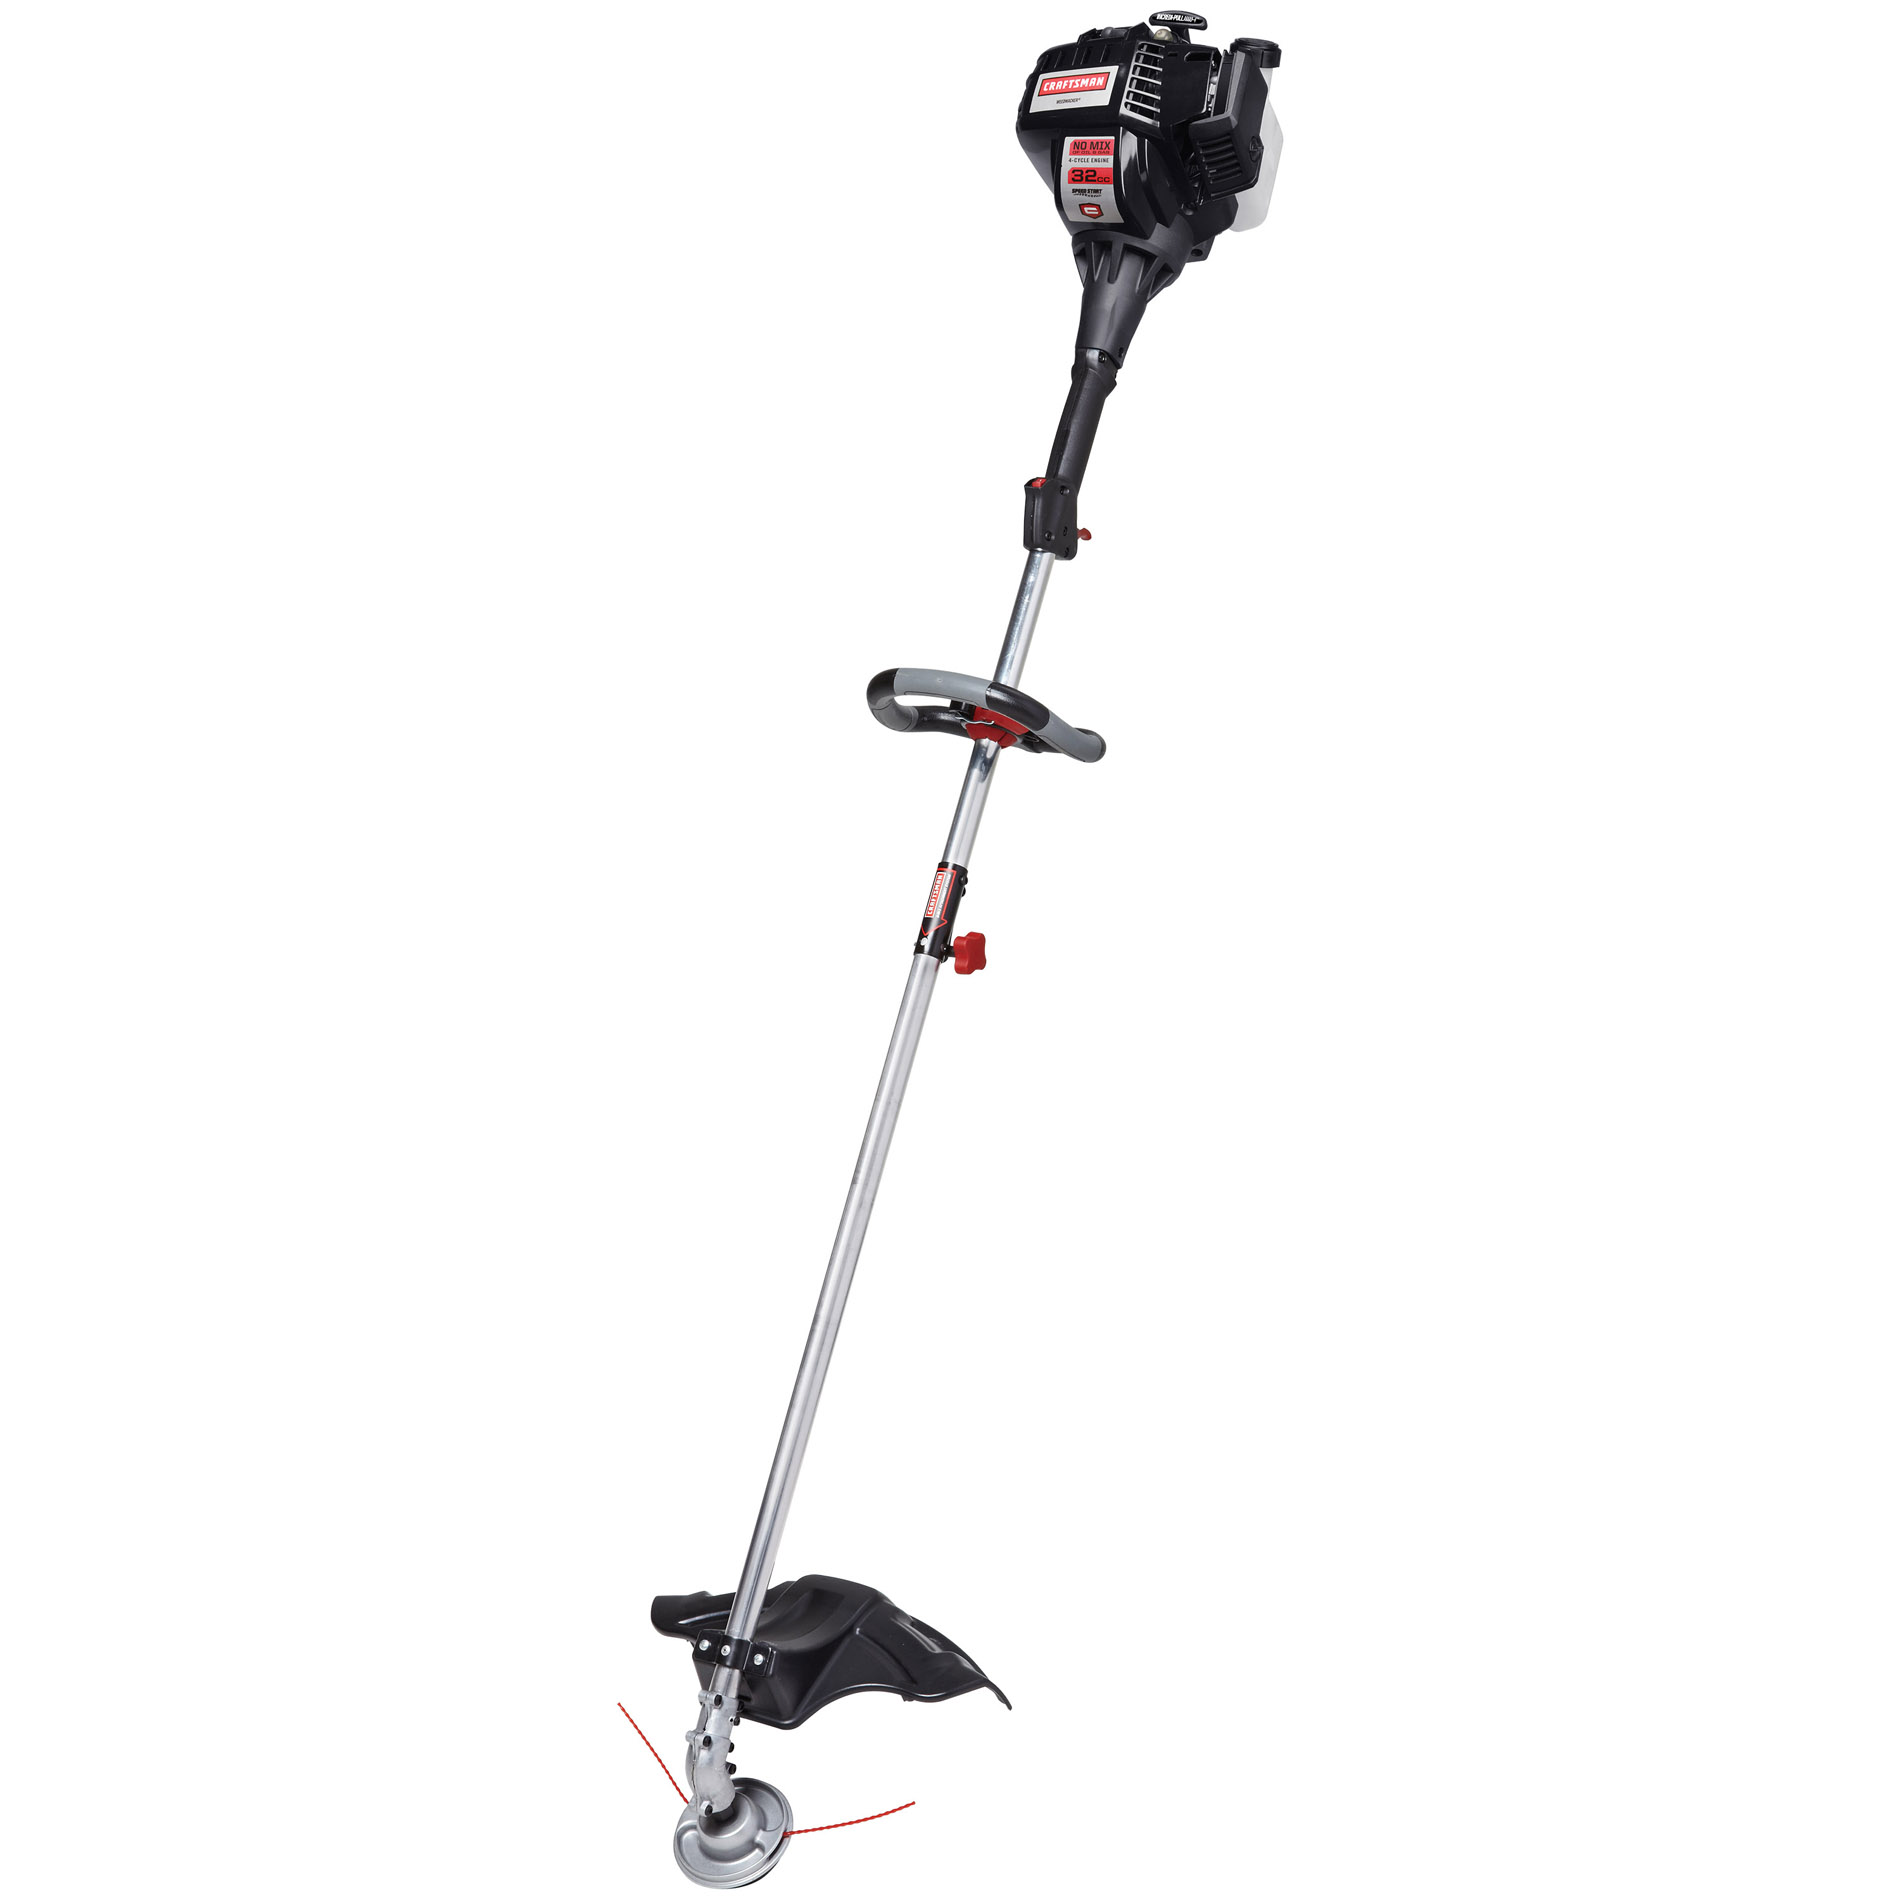 Craftsman 32cc* 4-Cycle Straight Shaft Weedwacker™ Gas Trimmer